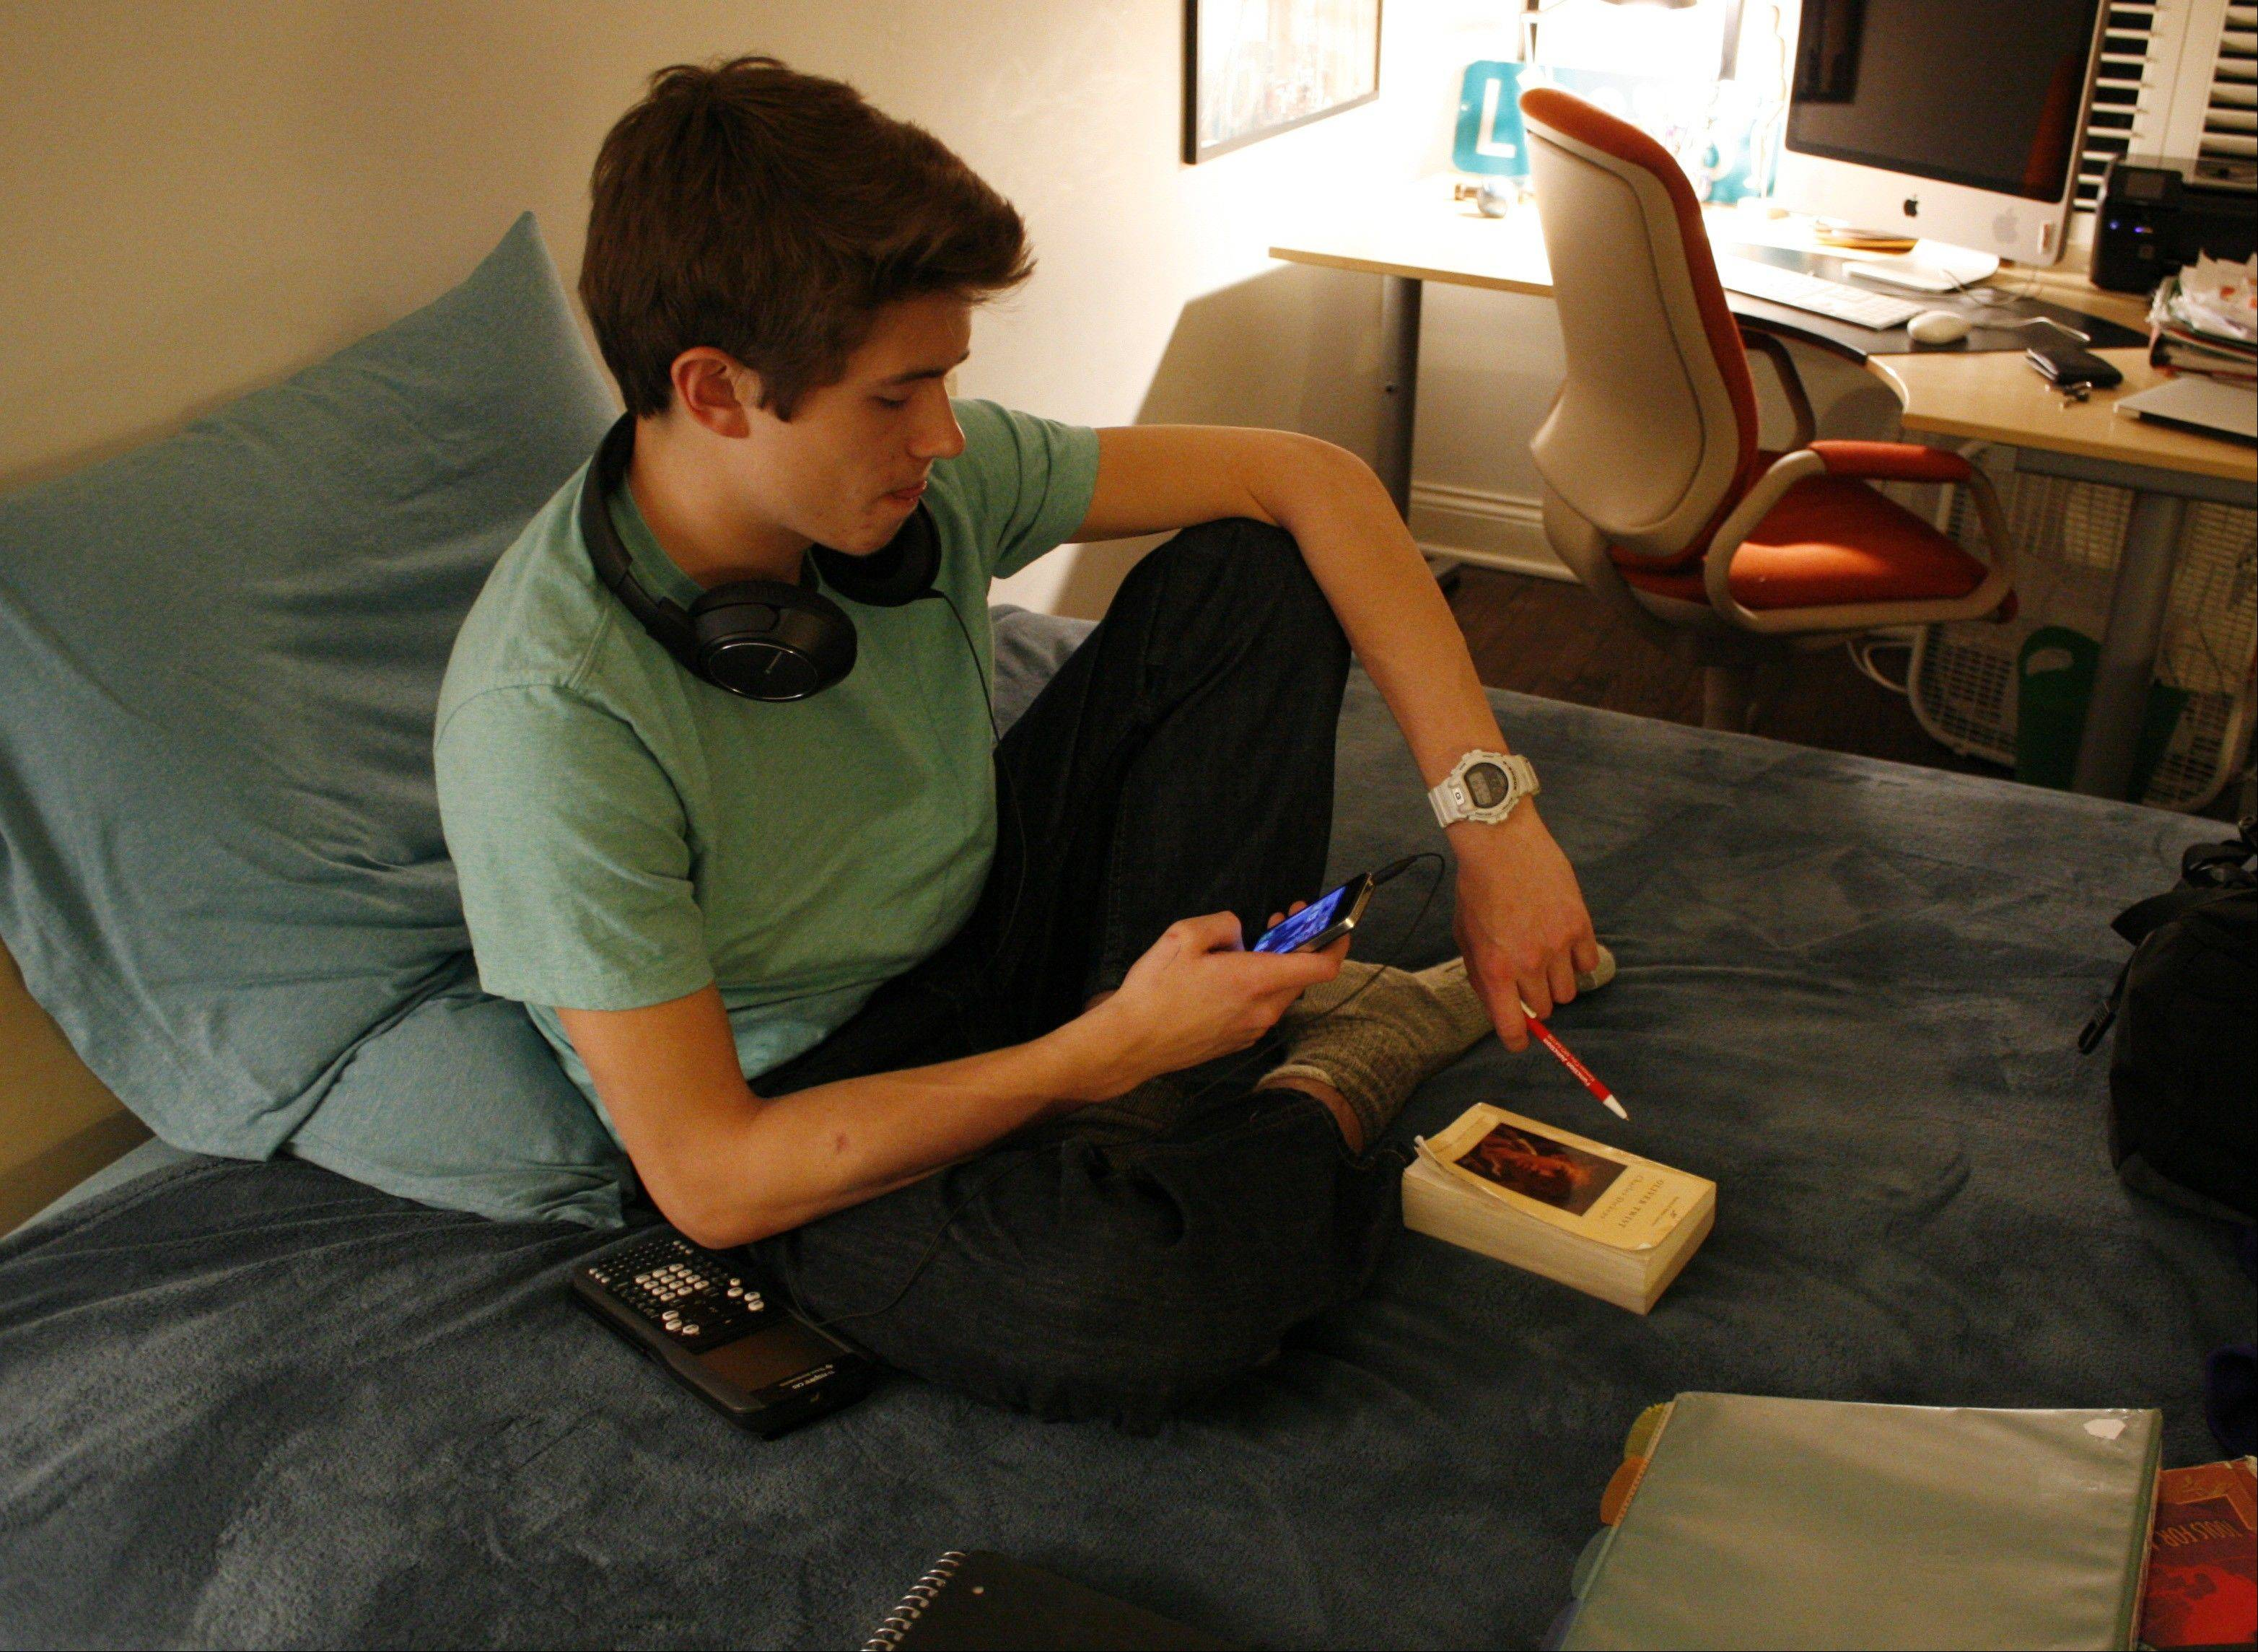 Donald Conkey, 15, checks his smartphone Monday while doing homework in his bedroom in Wilmette. A new report from the Pew Internet & American Life Project says more teens are using smartphones as a main means of accessing the Internet � more so than adults.